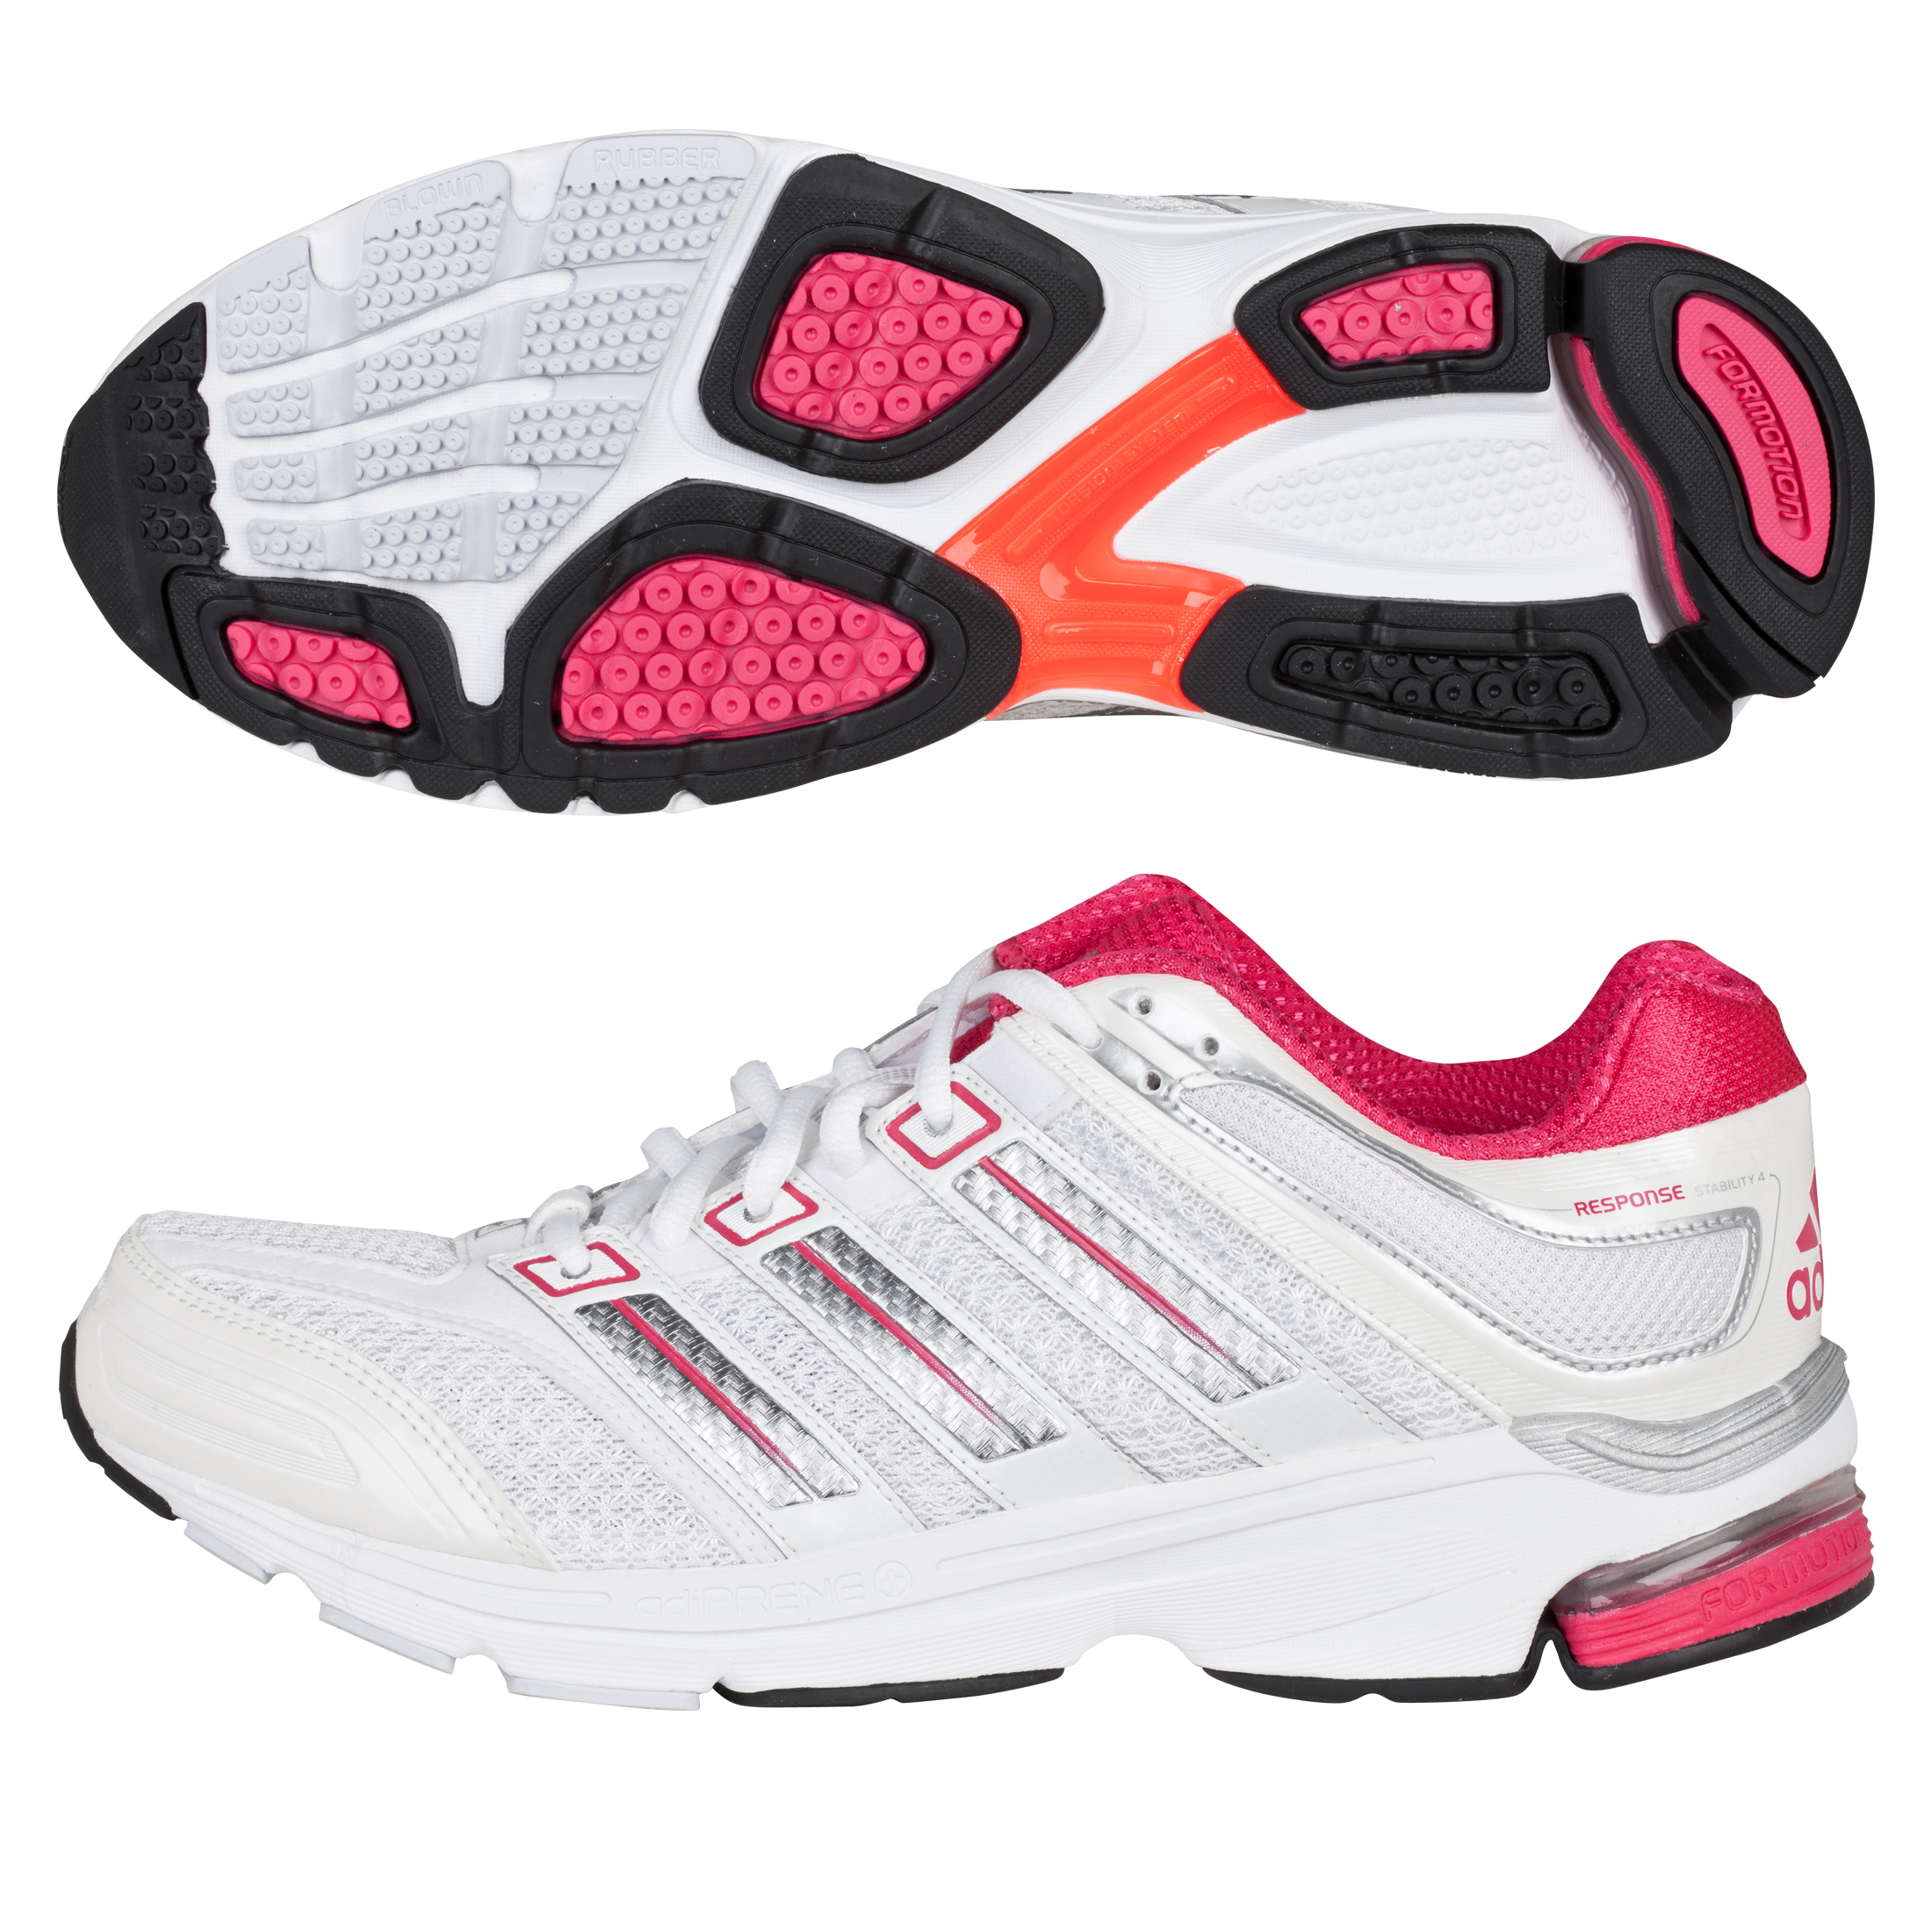 Adidas Response Stabilty 4 Running Trainers - Running White/Metallic Silver/Bright Pink - Womens